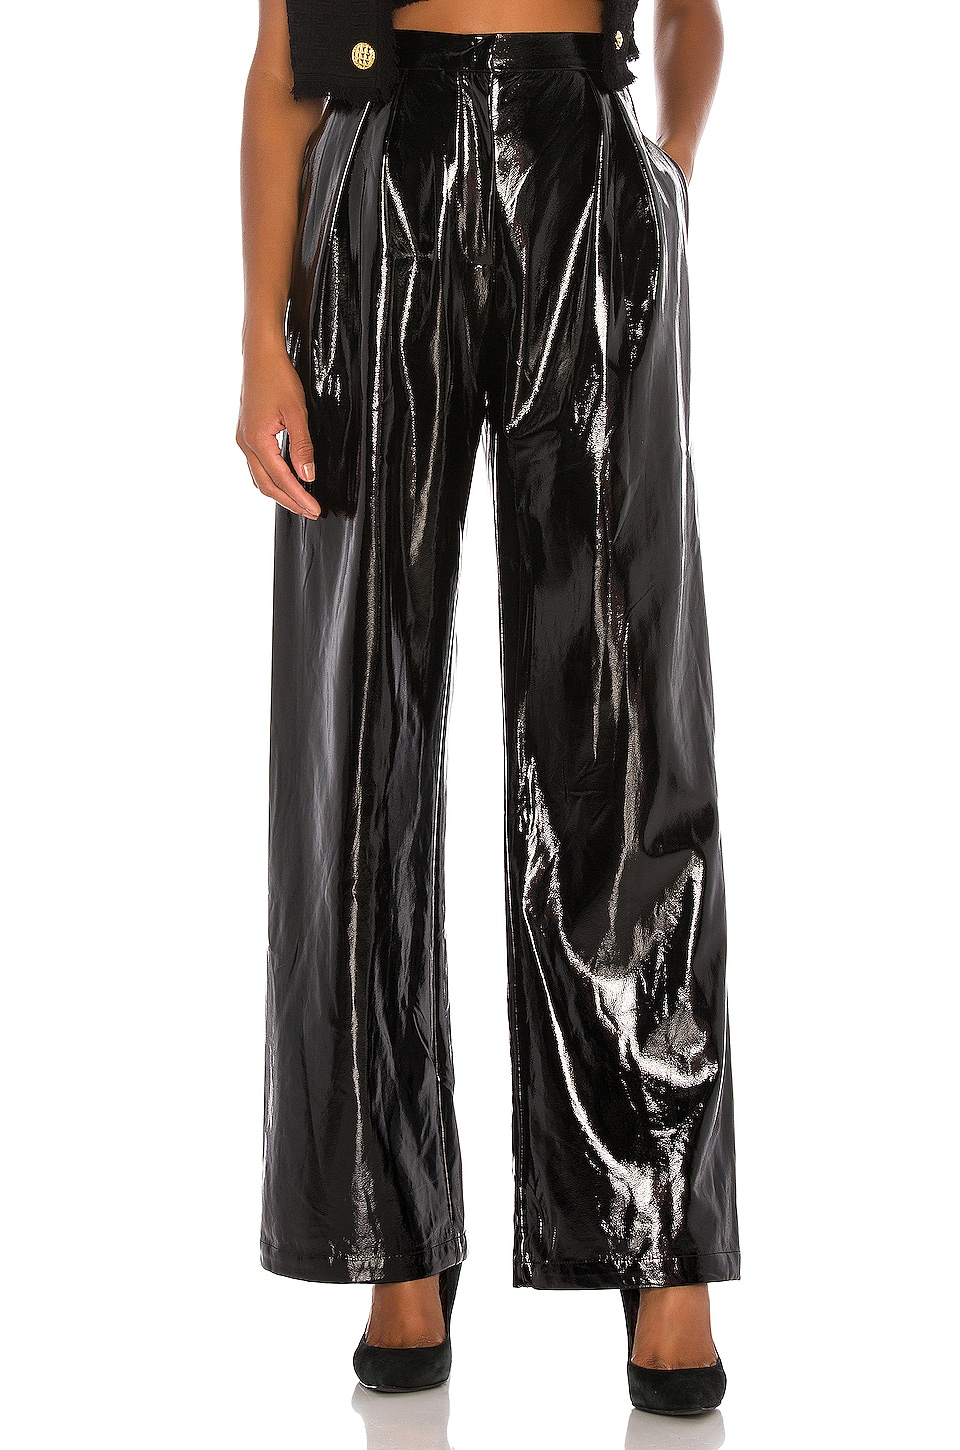 Ronny Kobo Dina Pant in Black